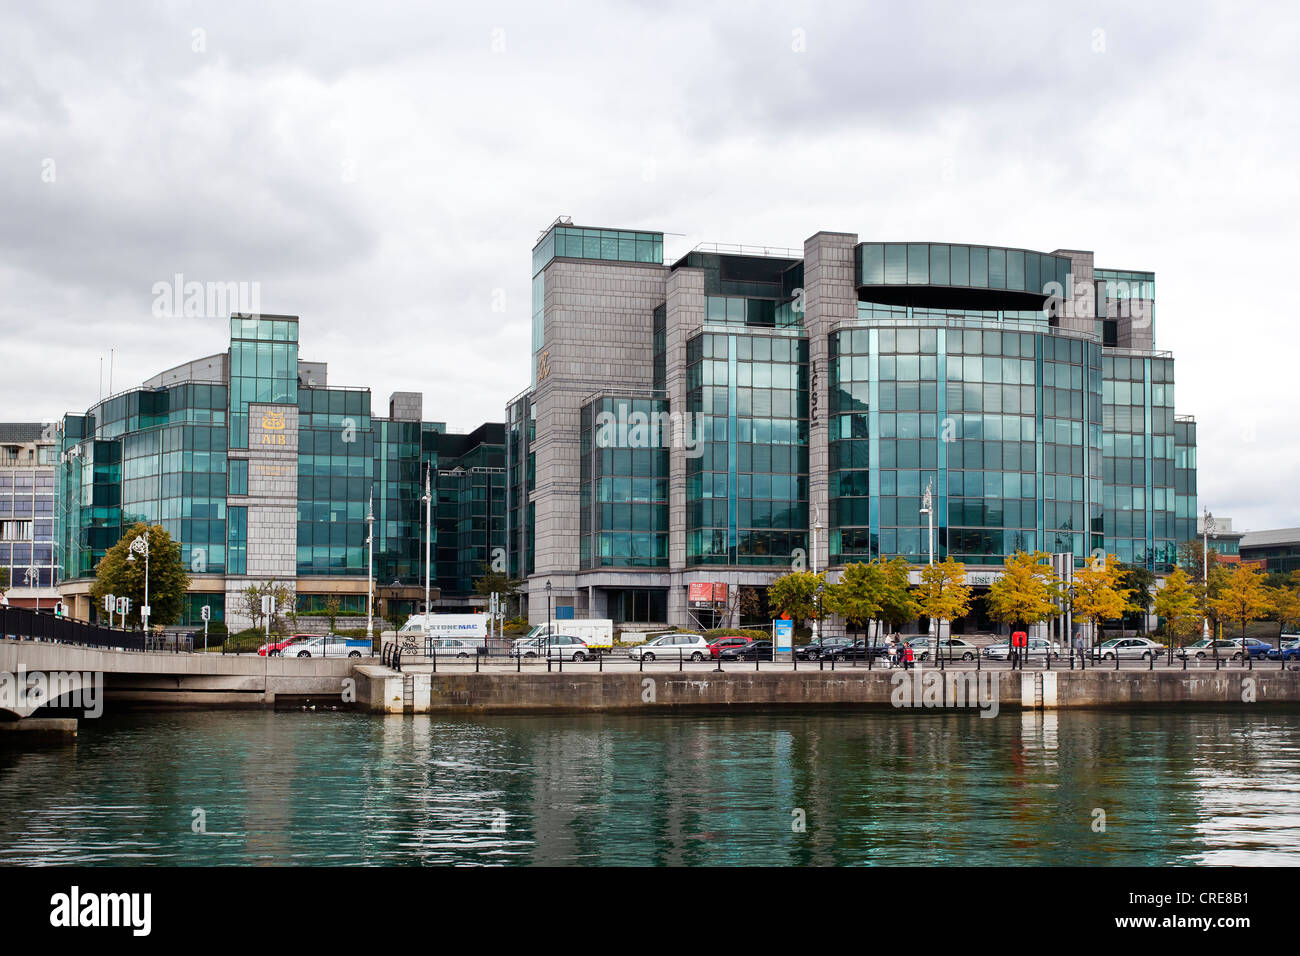 Headquarters of the Allied Irish Bank, AIB, on the River Liffey in the financial district in Dublin, Ireland, Europe - Stock Image